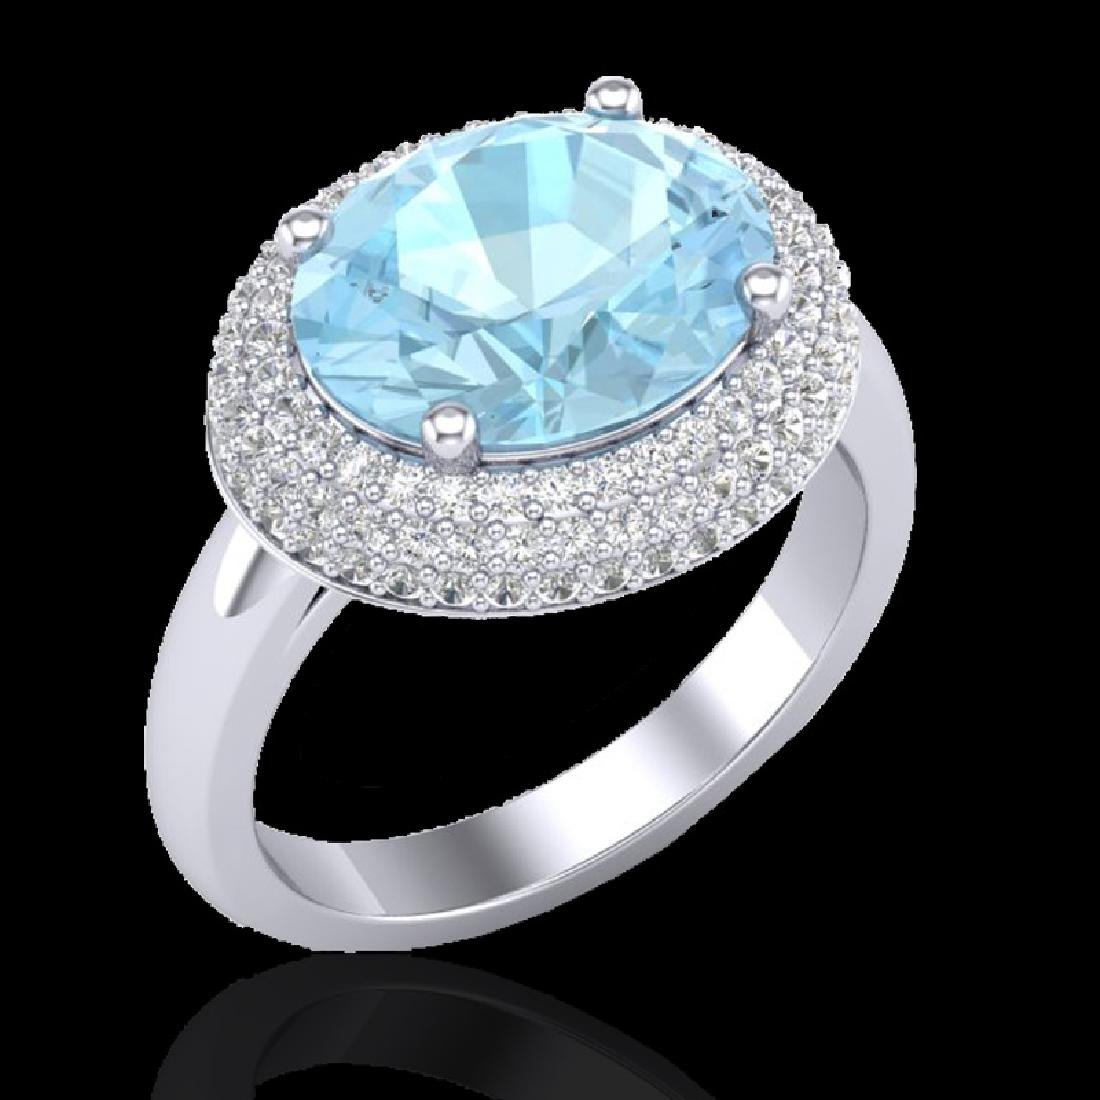 4 CTW Aquamarine & Micro Pave VS/SI Diamond Ring 18K